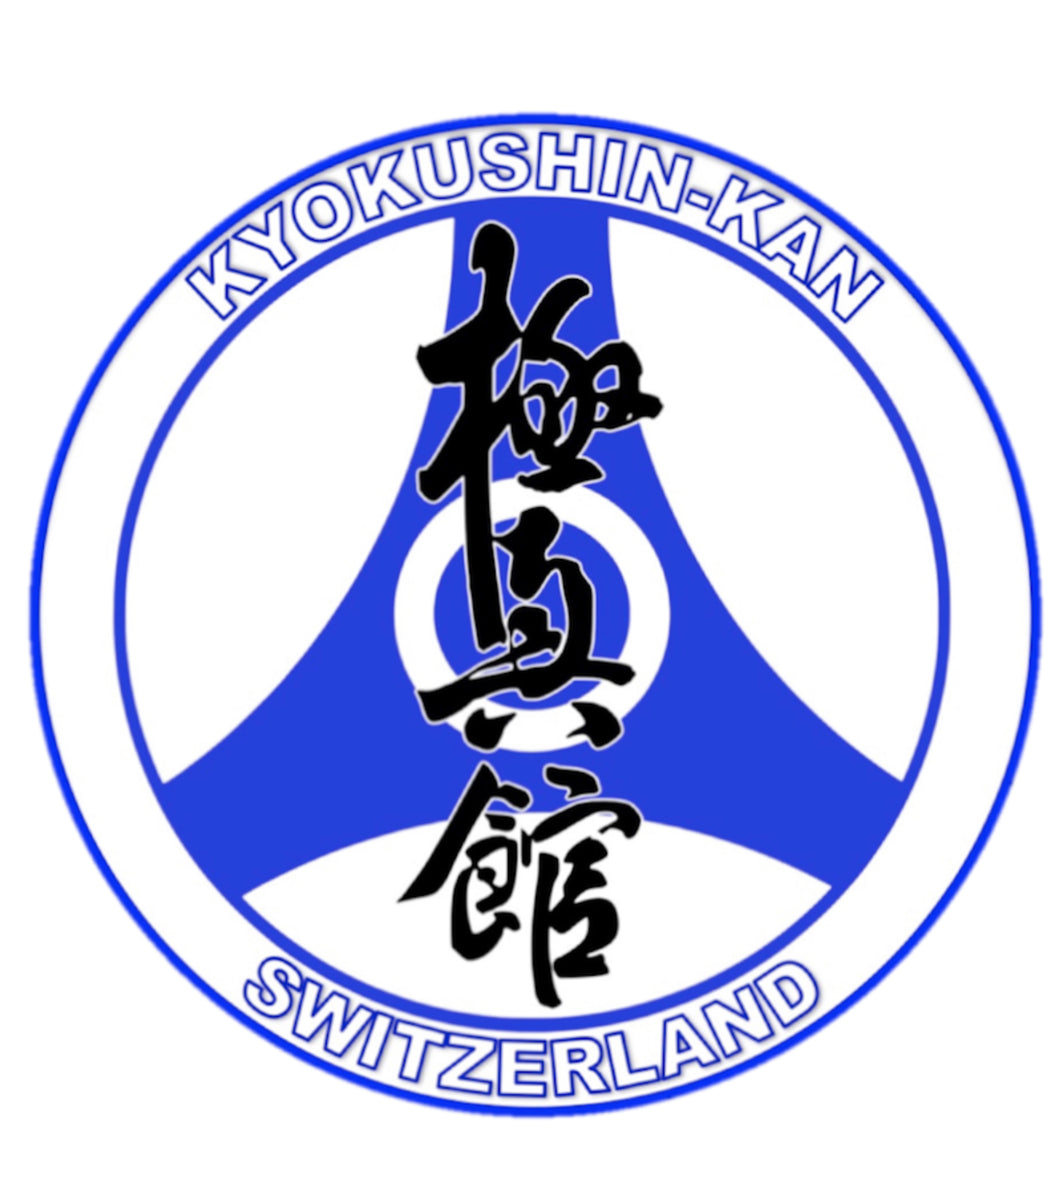 <transcy>Kyokushin-Kan patches</transcy>